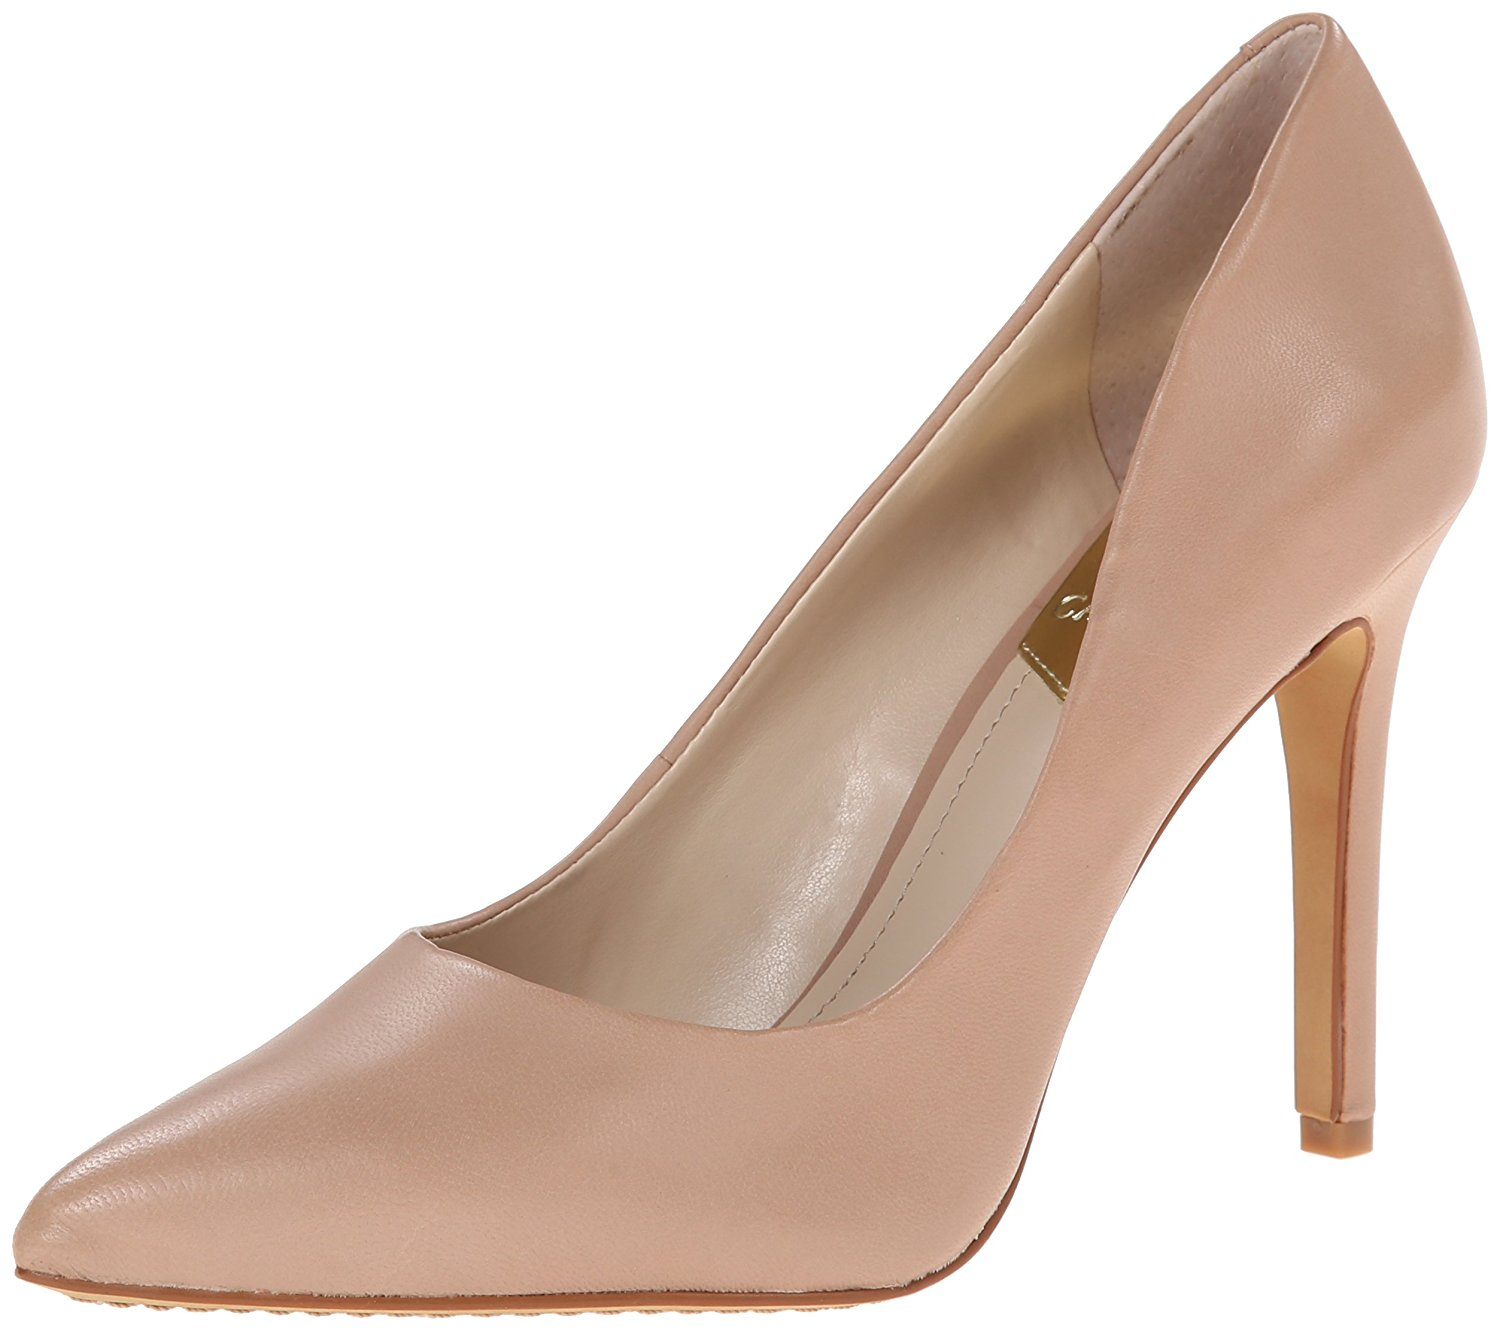 Vince Camuto Womens Kain Pointed Toe Classic Pumps Blush Size 8.5